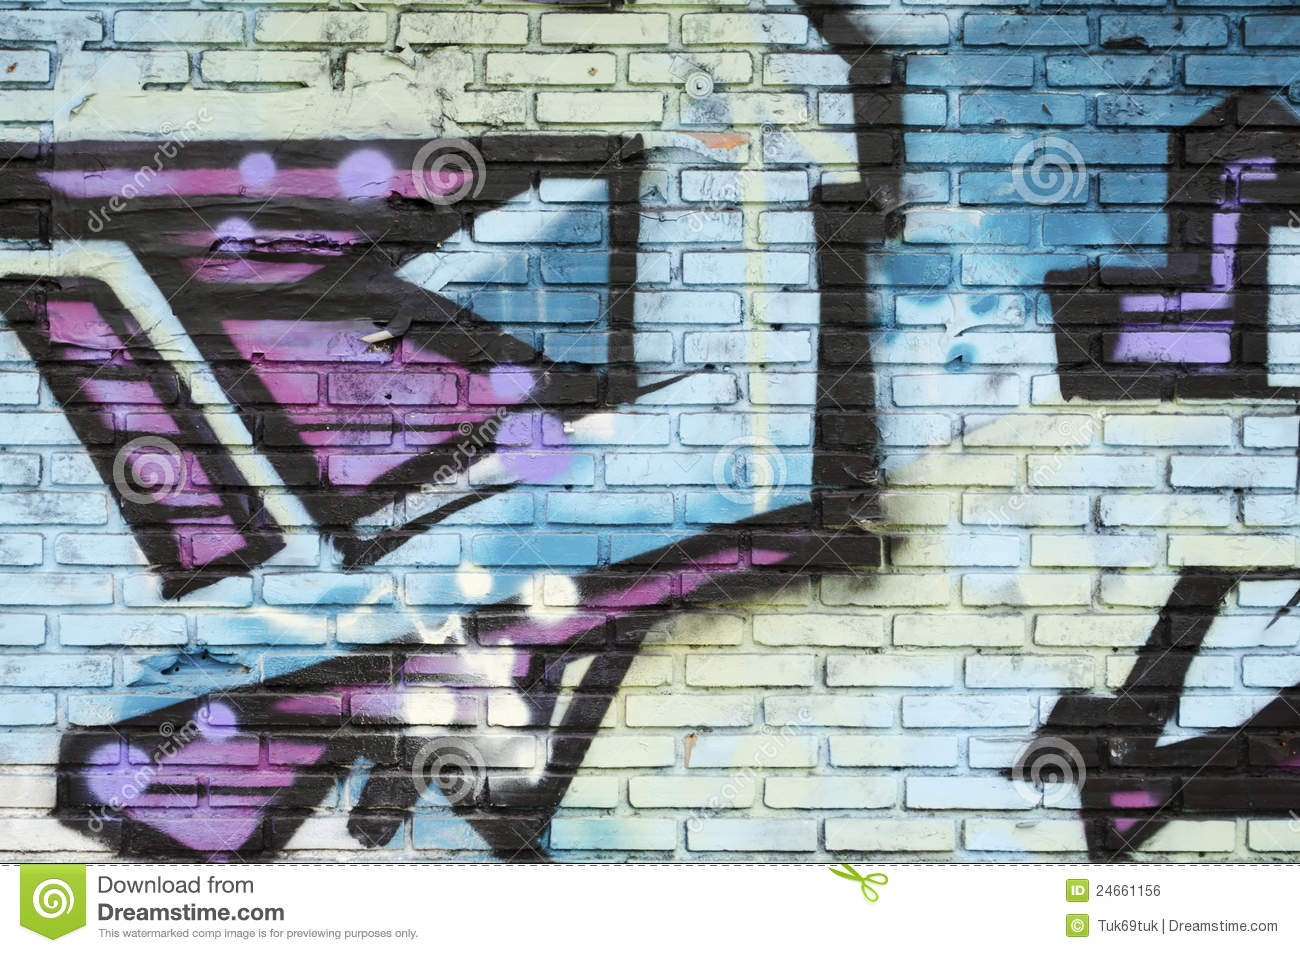 Grafitti wall background - Abstract Background Graffiti Wall